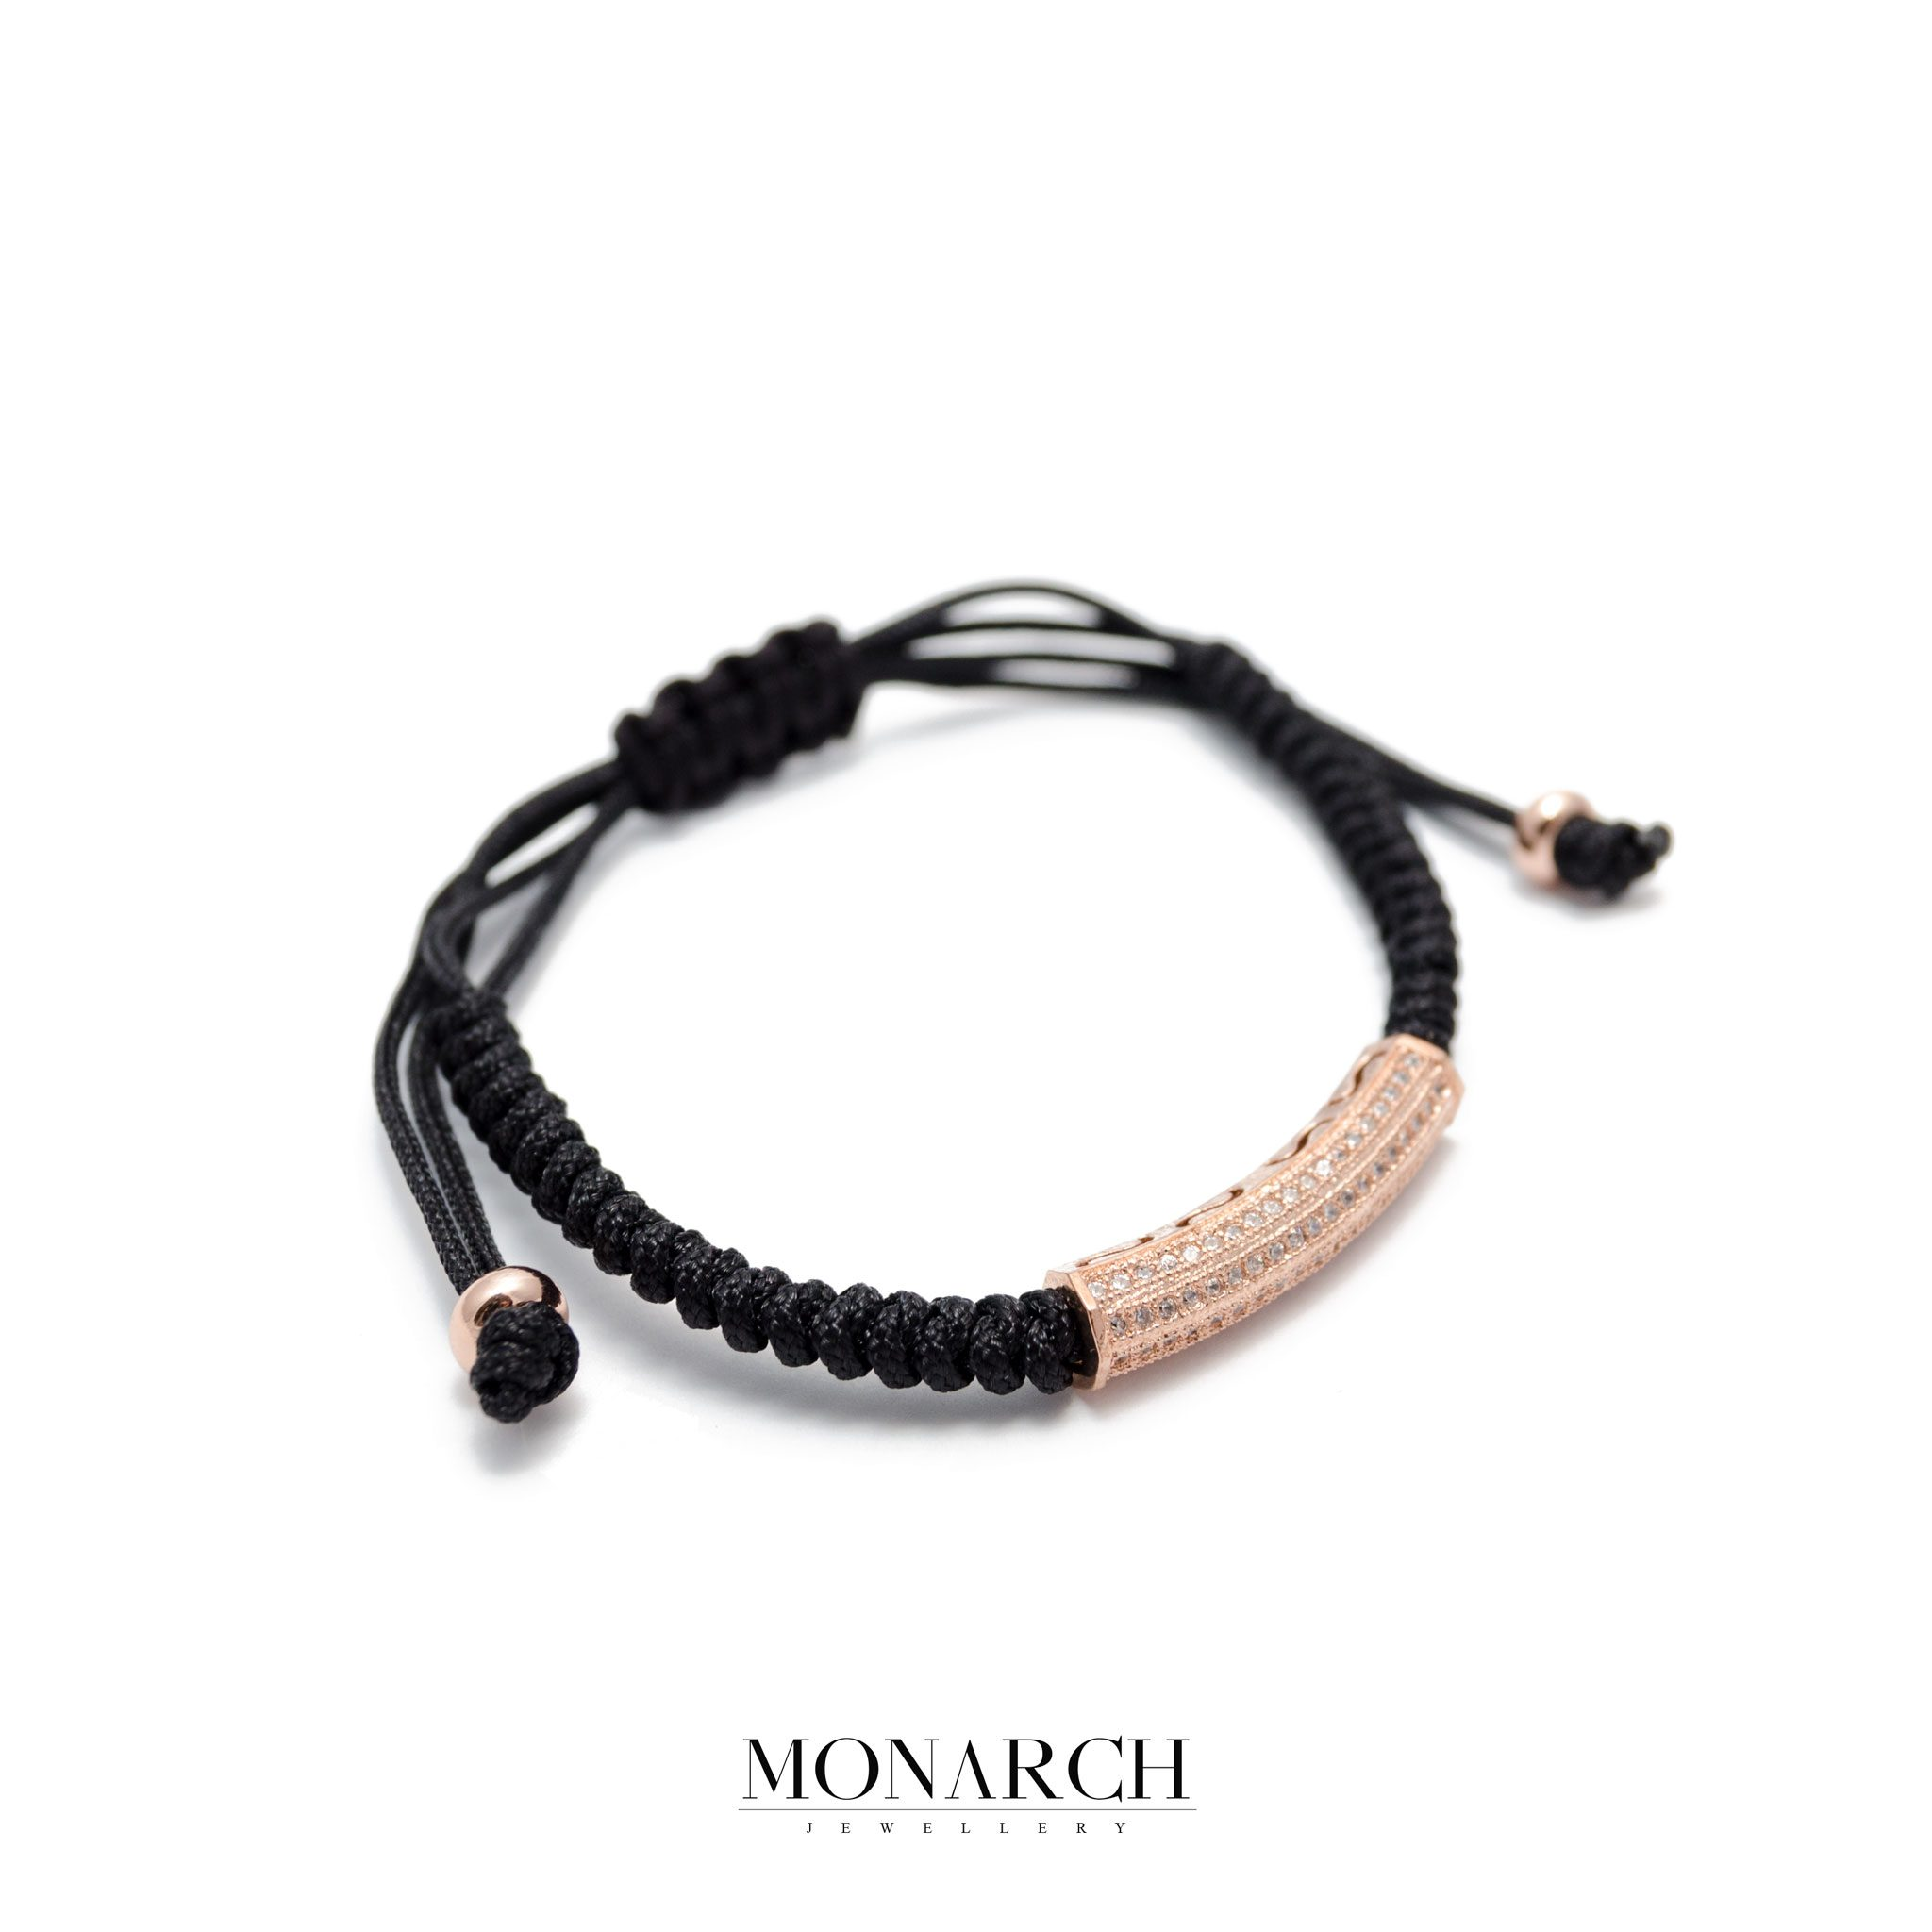 Monarch Jewellery Gold Rose Micro Tube Charm Luxury Macrame Bracelet